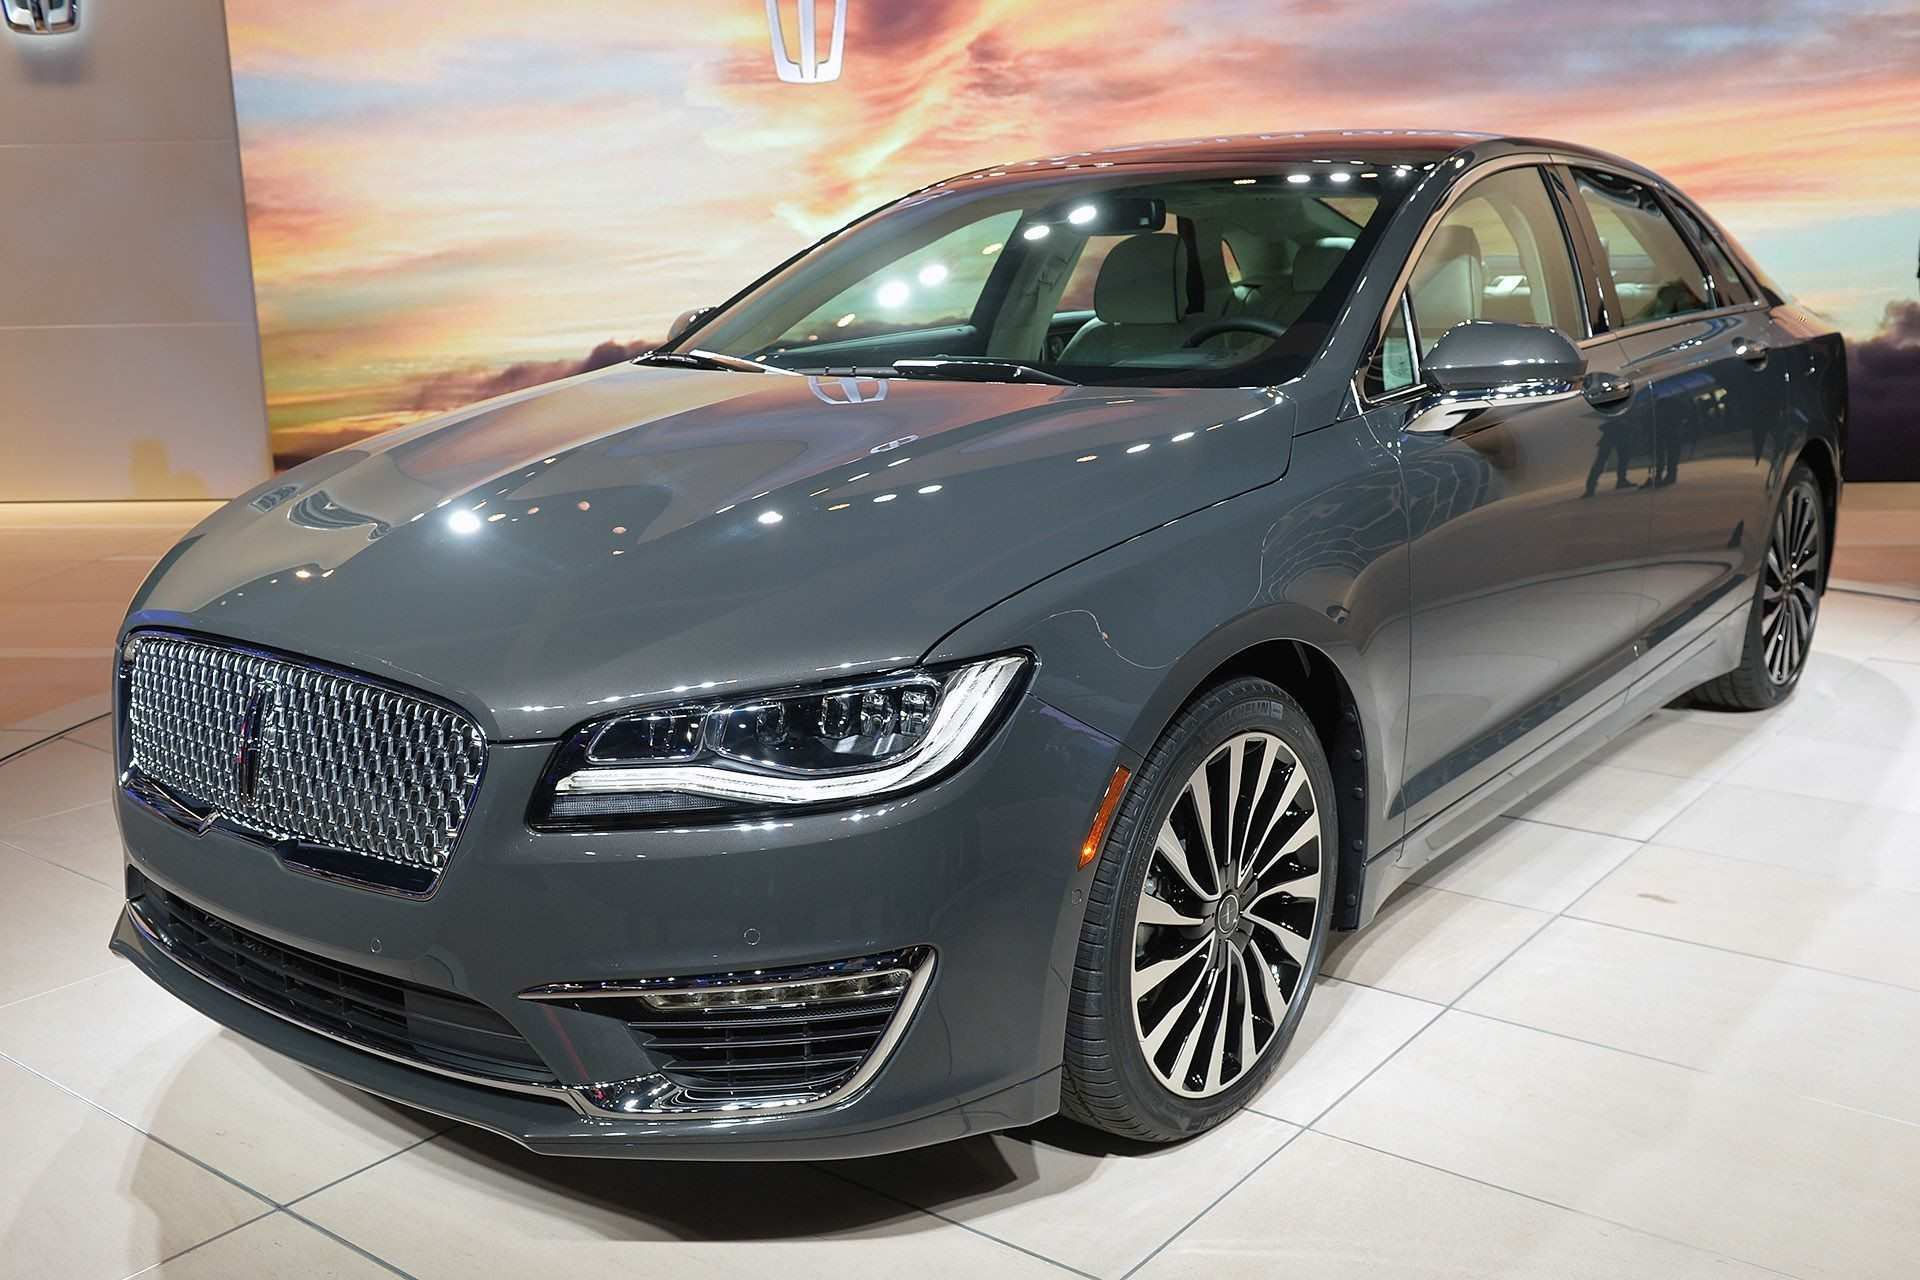 75 The Best 2020 Lincoln Town Car Review and Release date ...